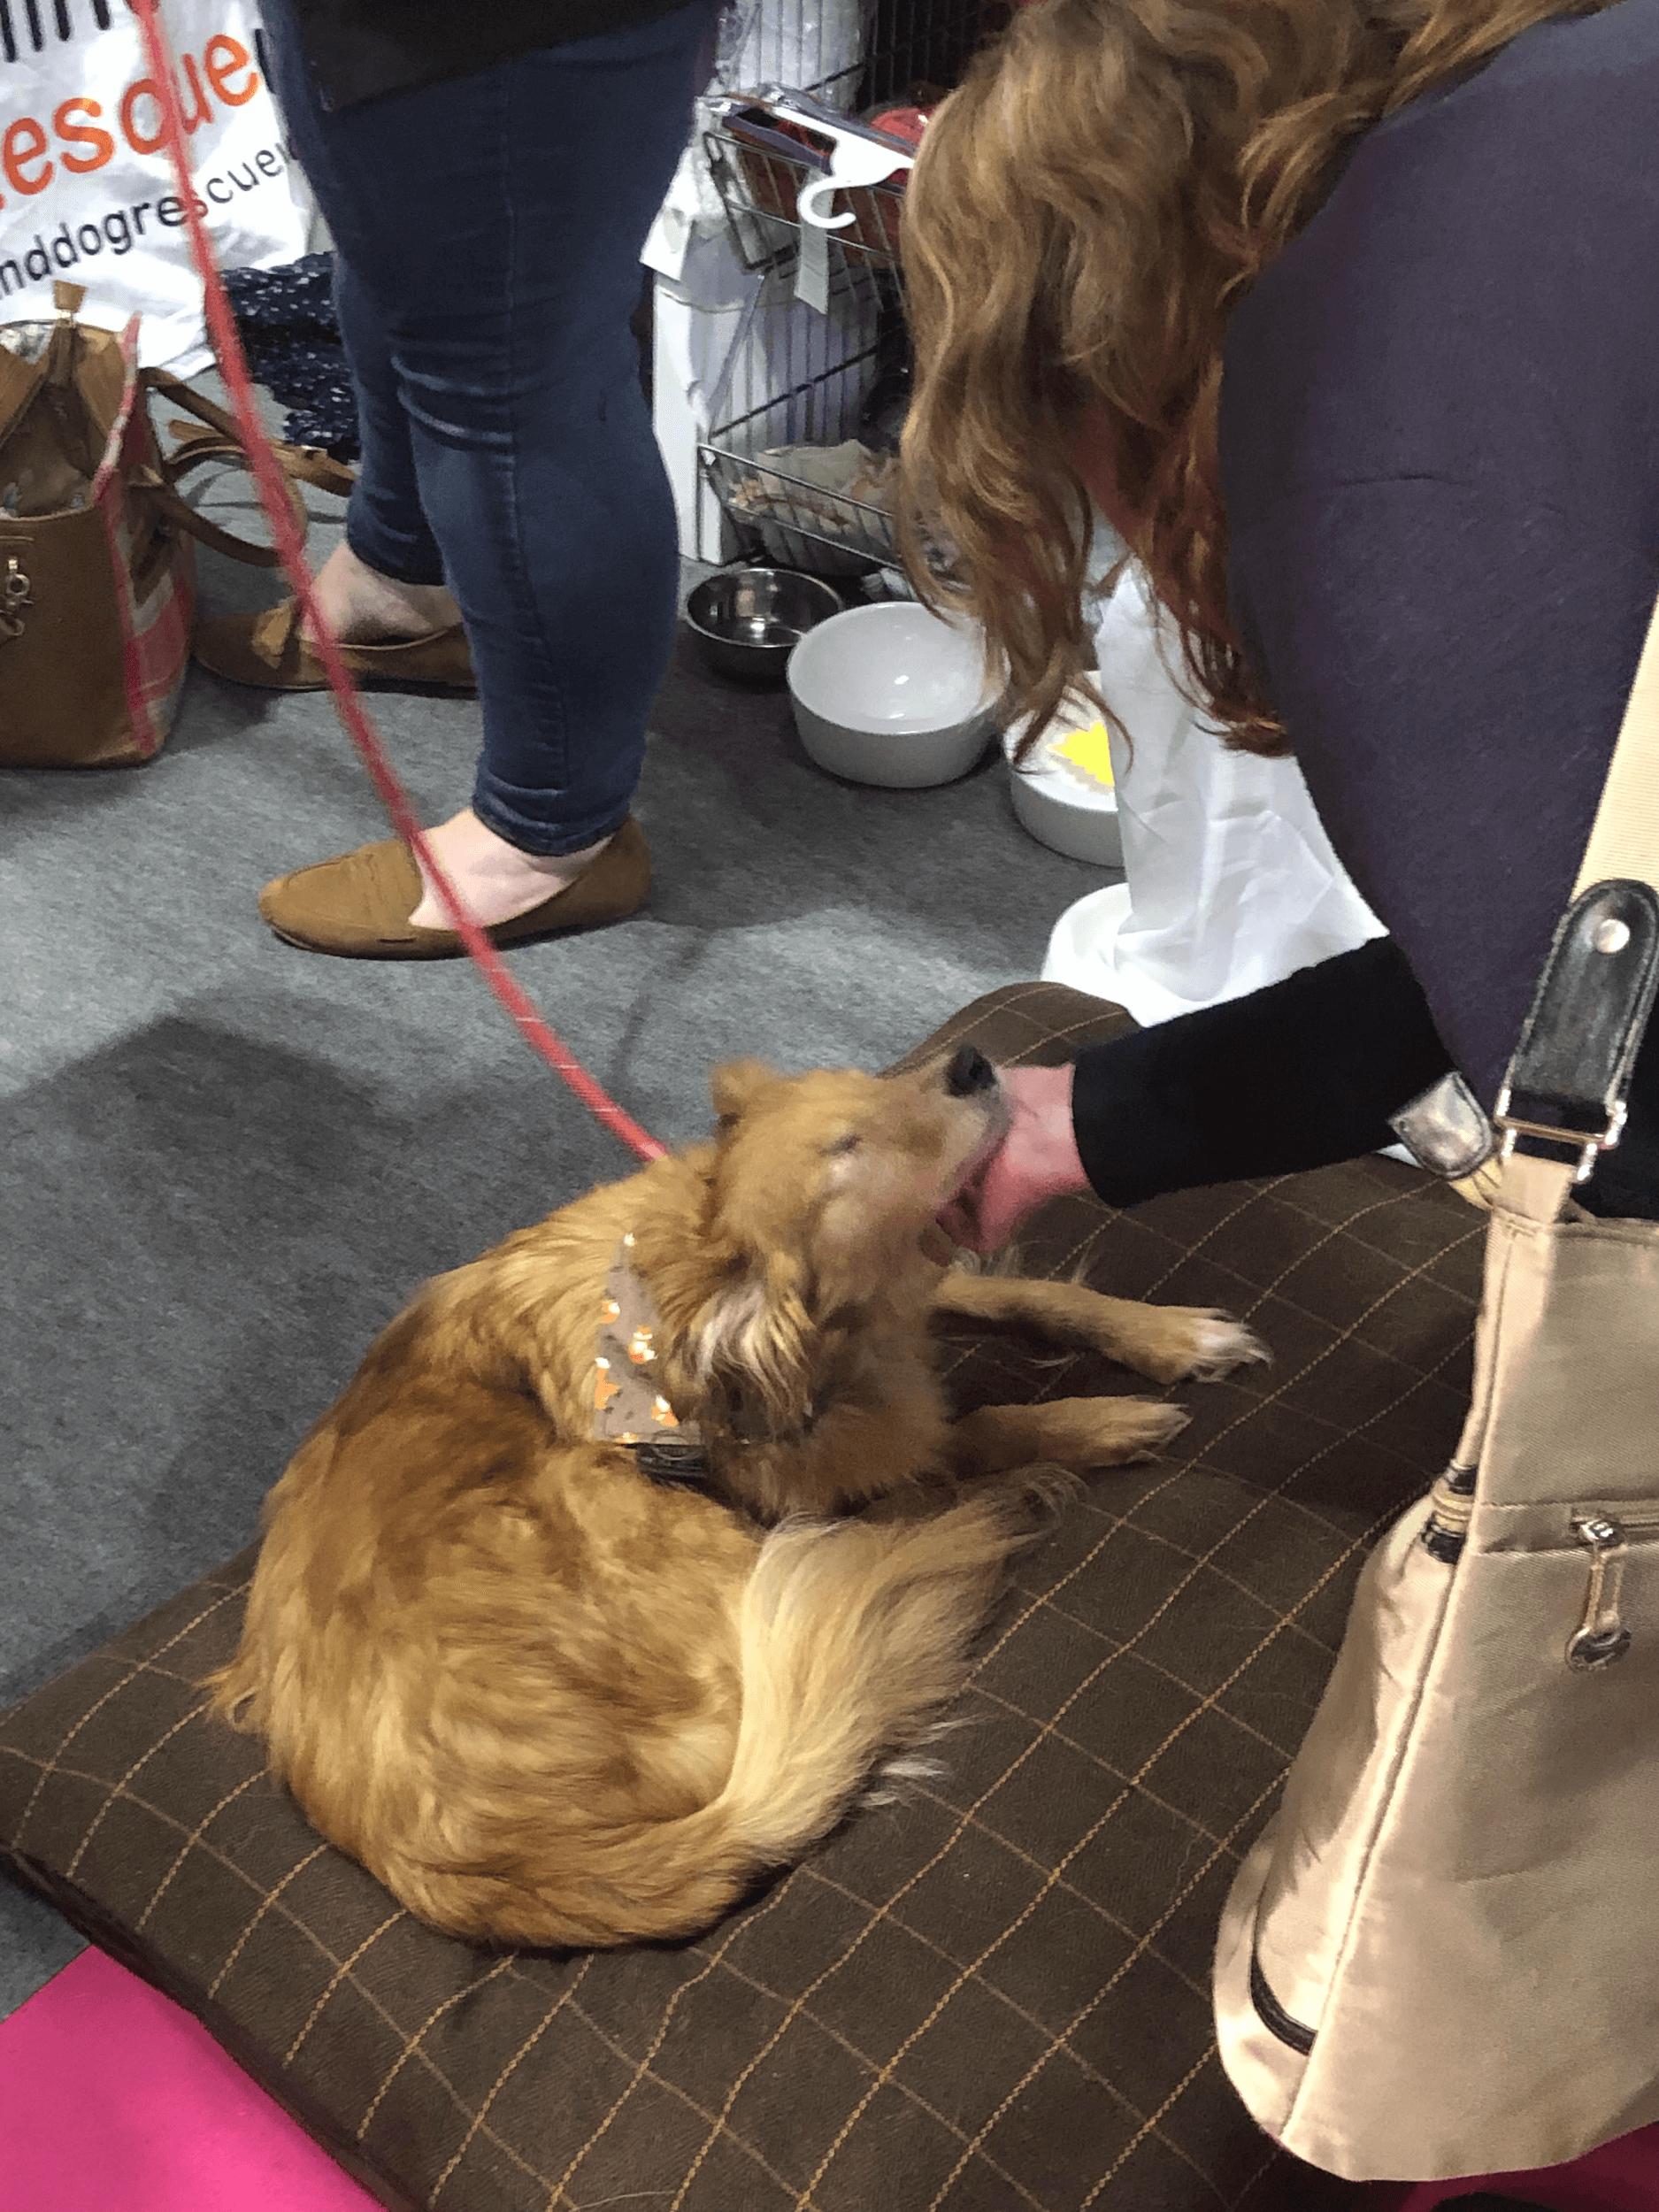 A blind pooch takes pleasure from this visitor's caress at the blind dog charity stand